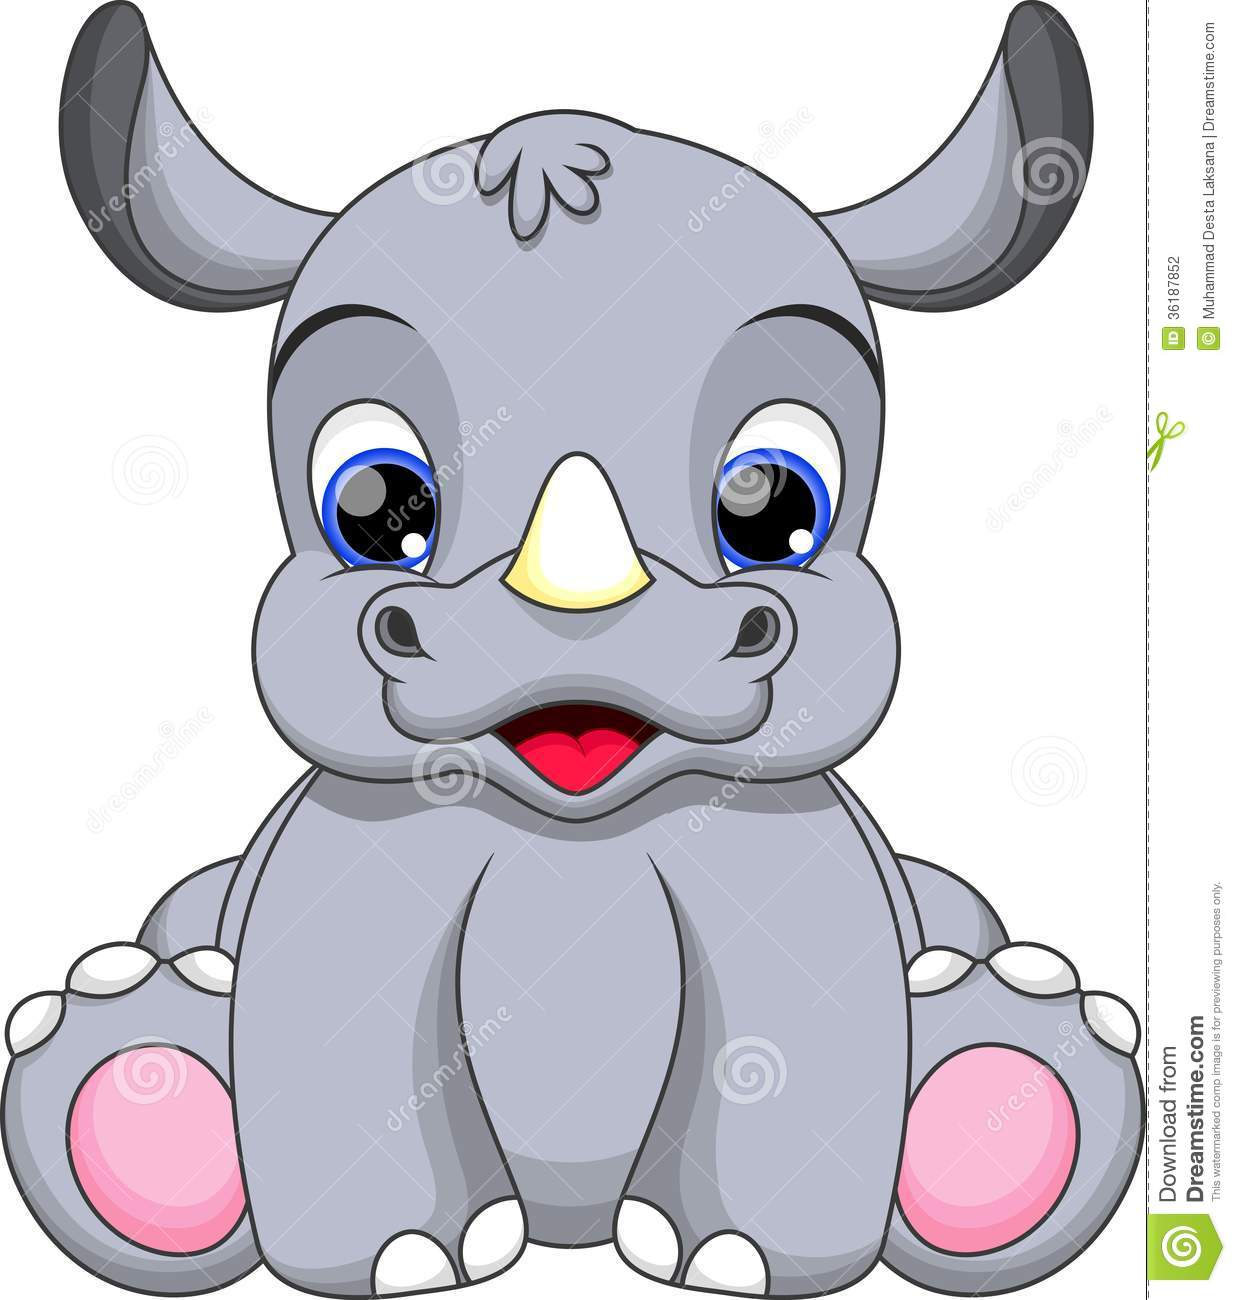 Baby Rhino Cartoon Stock Photography - Image: 36187852